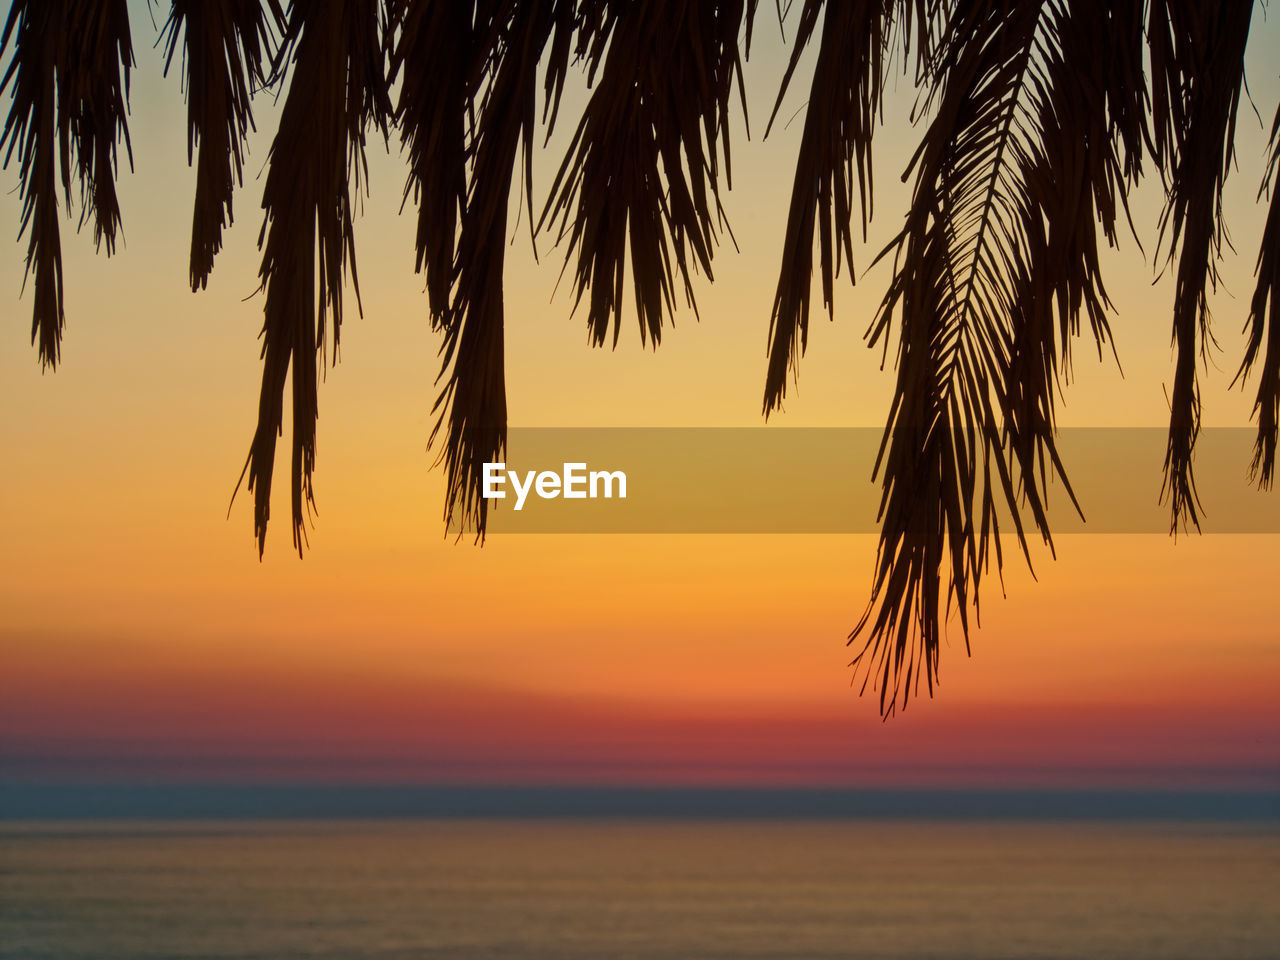 sunset, sky, beauty in nature, water, scenics - nature, sea, horizon over water, tranquility, orange color, horizon, tranquil scene, tree, nature, silhouette, plant, no people, idyllic, palm tree, tropical climate, outdoors, palm leaf, romantic sky